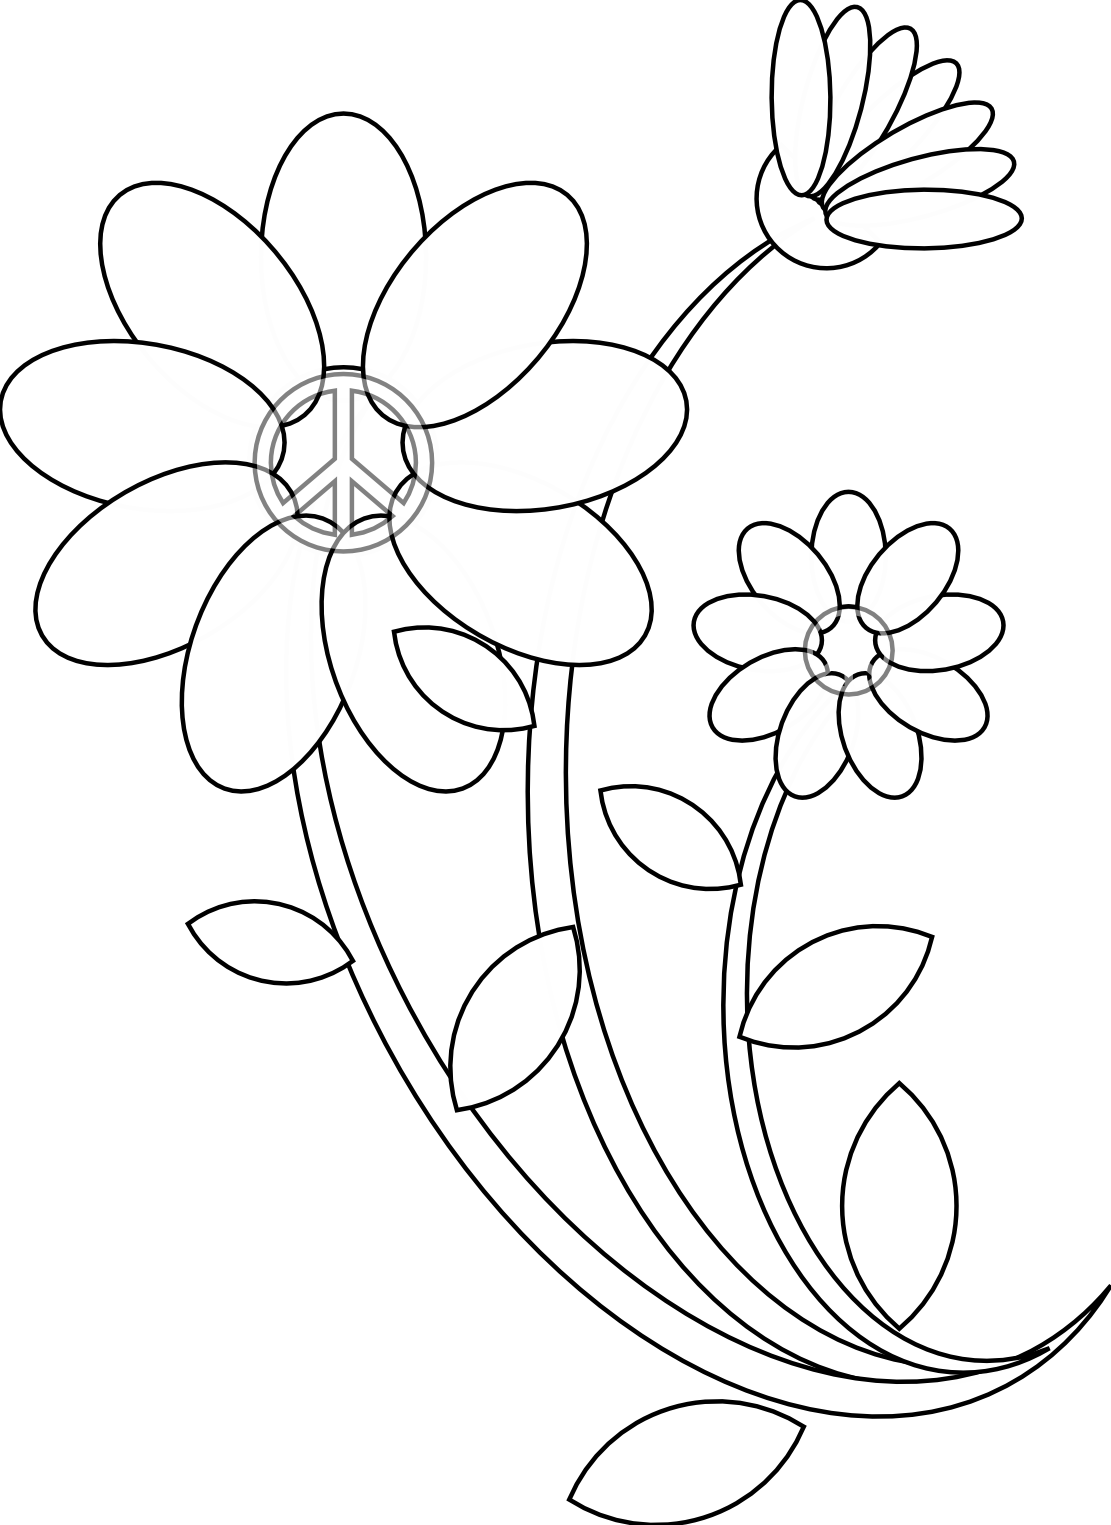 Line Art Flowers Images : Flowers line drawing images clipart best